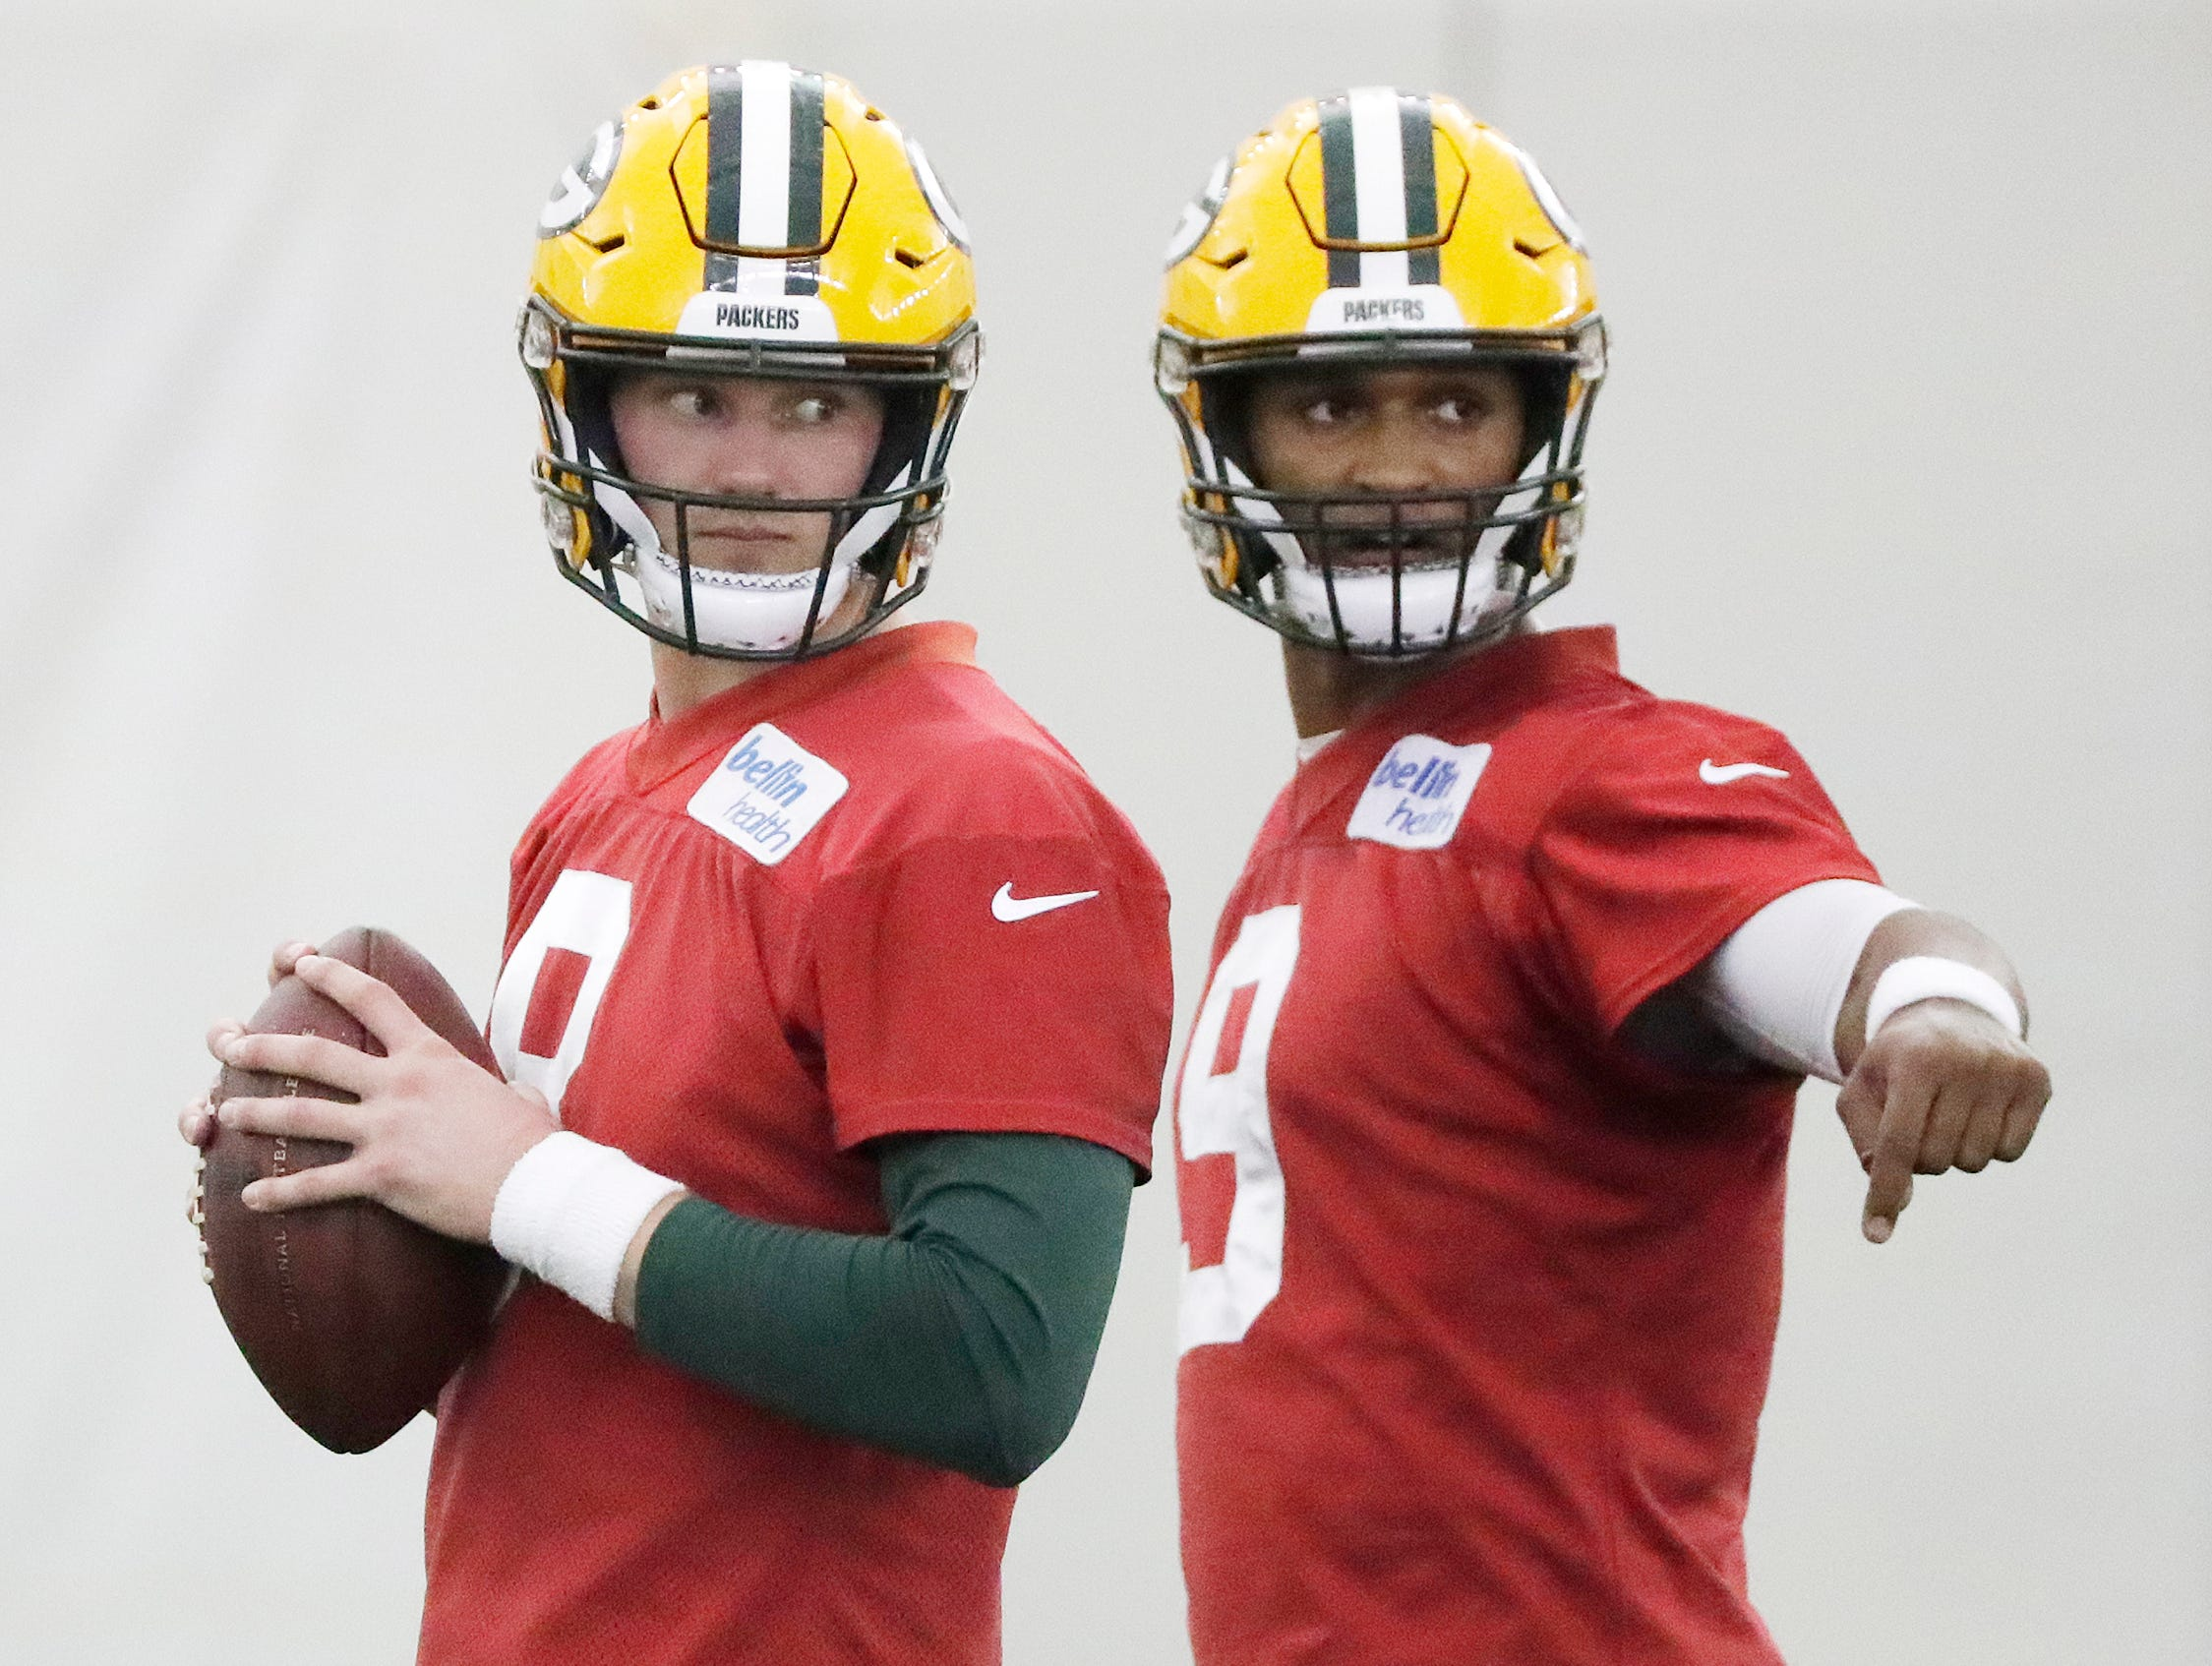 Green Bay Packers quarterback Tim Boyle (8) and quarterback DeShone Kizer (9) talk during a team practice at the Don Hutson Center on Wednesday, April 24, 2019 in Ashwaubenon, Wis.